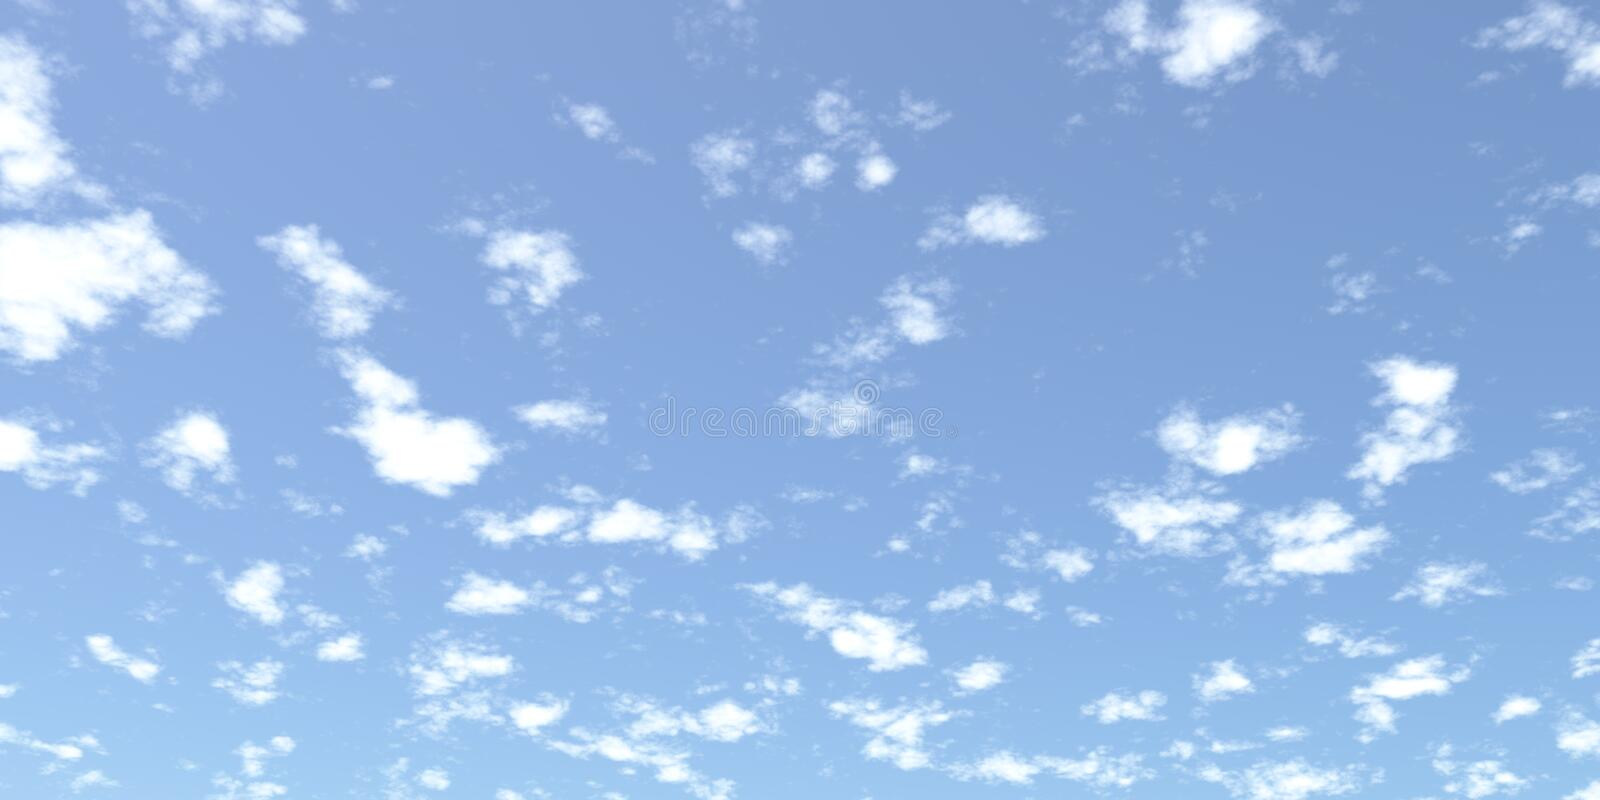 Download Clouds stock illustration. Illustration of blue, cloudy - 14630272